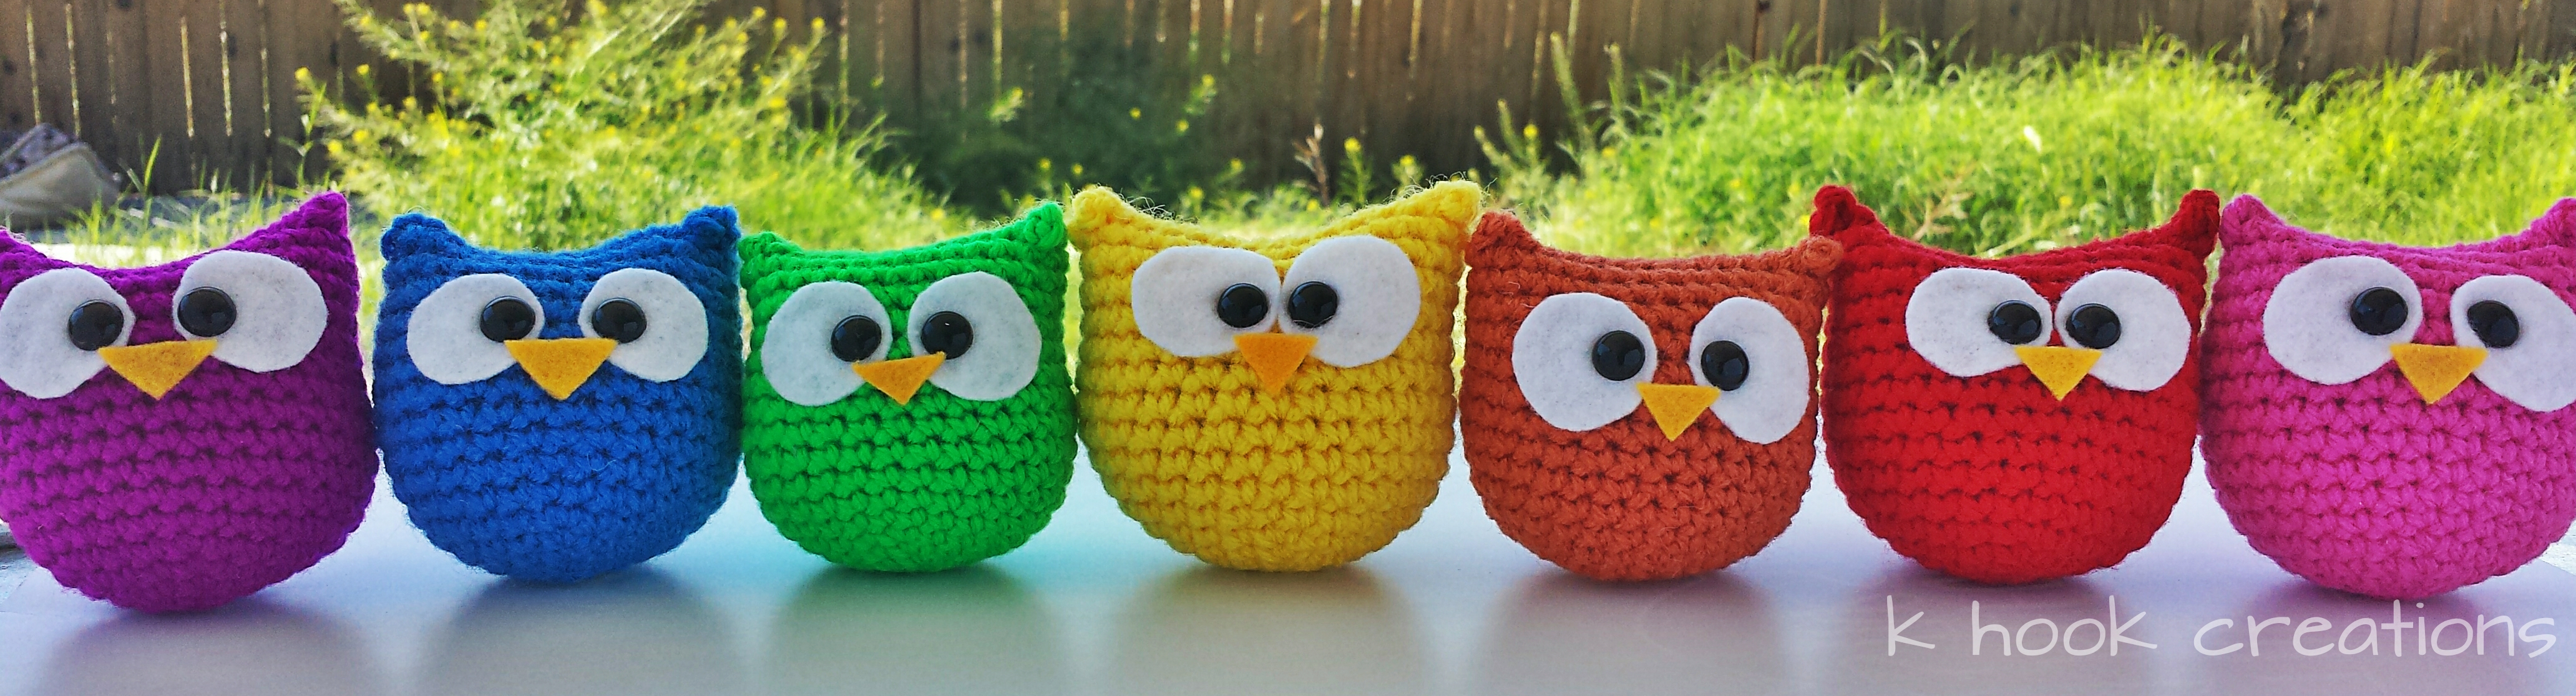 Crochet Owl Pattern ? K Hook Creations